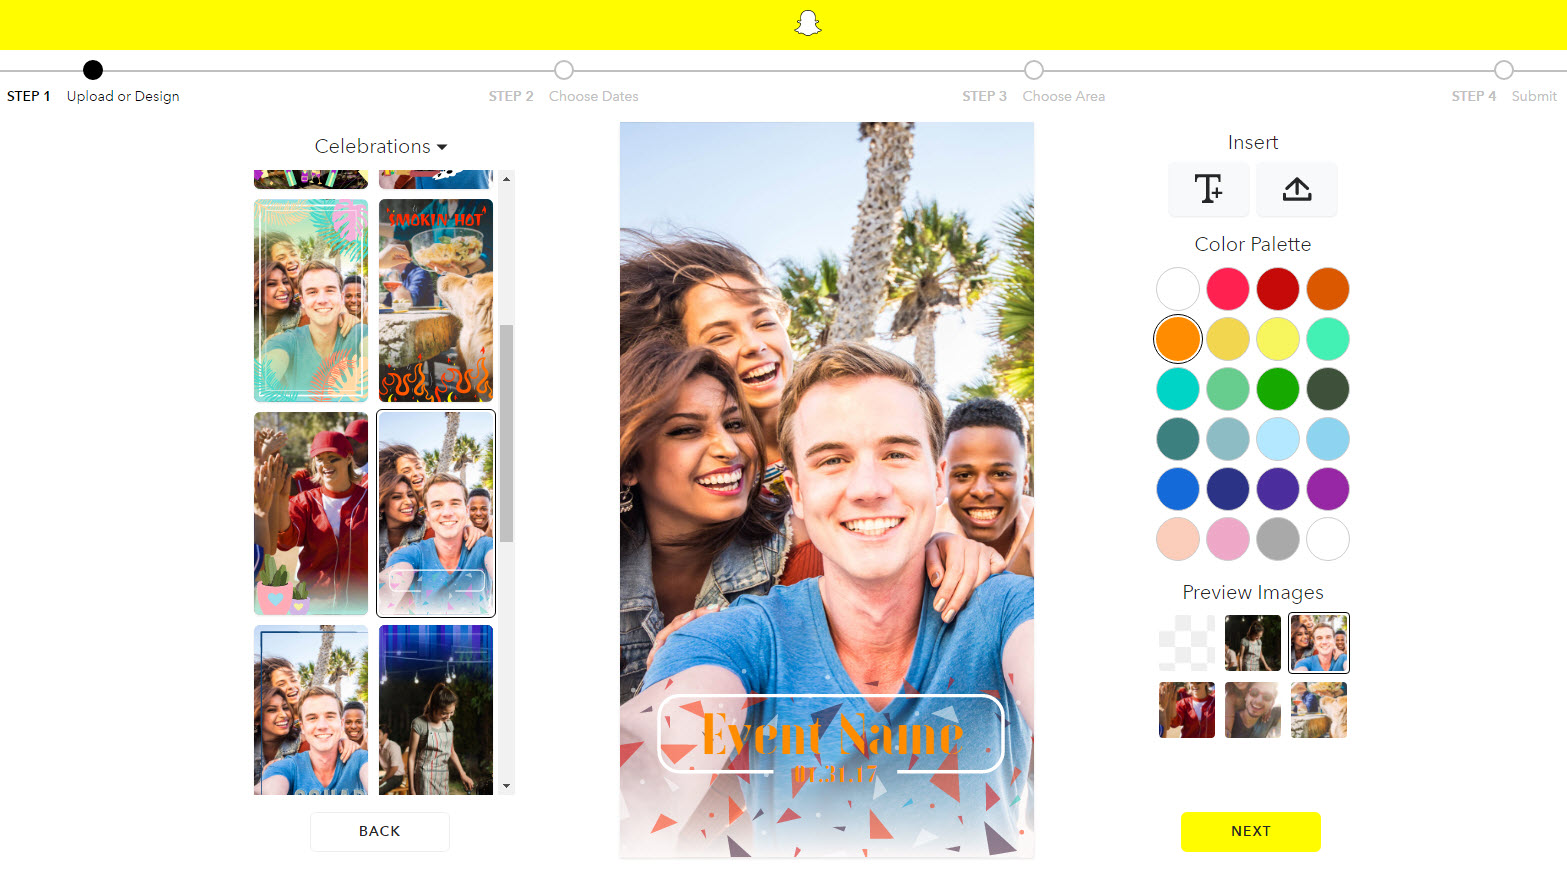 snapchat geofilter template free - guide on how to create a snapchat geofilter for your